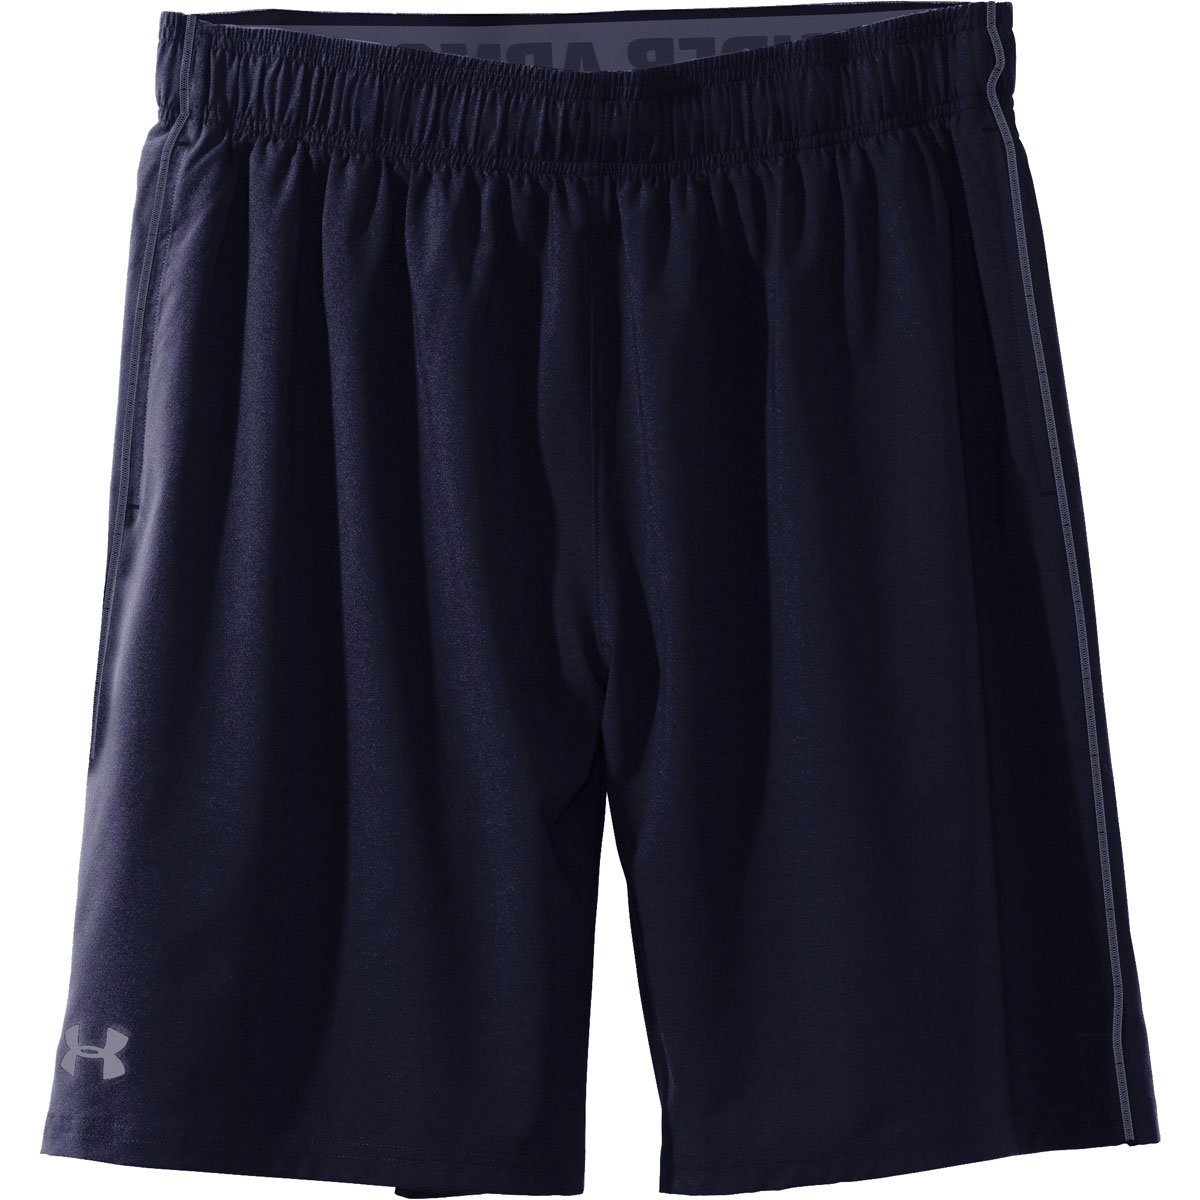 Under Armour Men's UA Raid 10'' Shorts DARK BLUE/Small